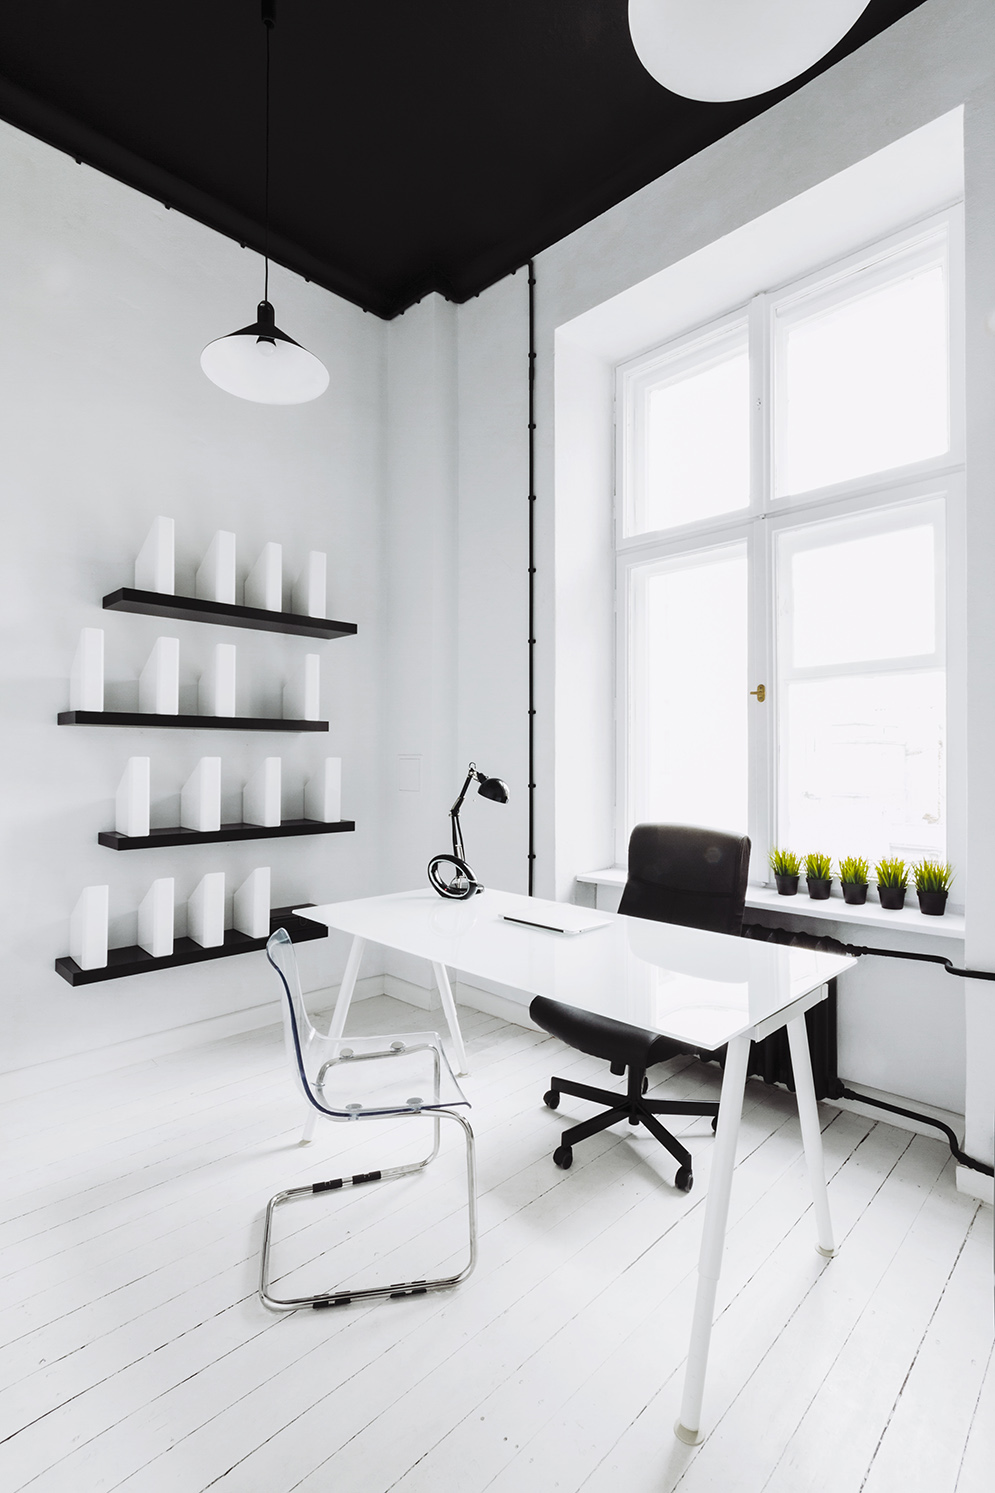 White Office - Industrial style apartment with meeting room